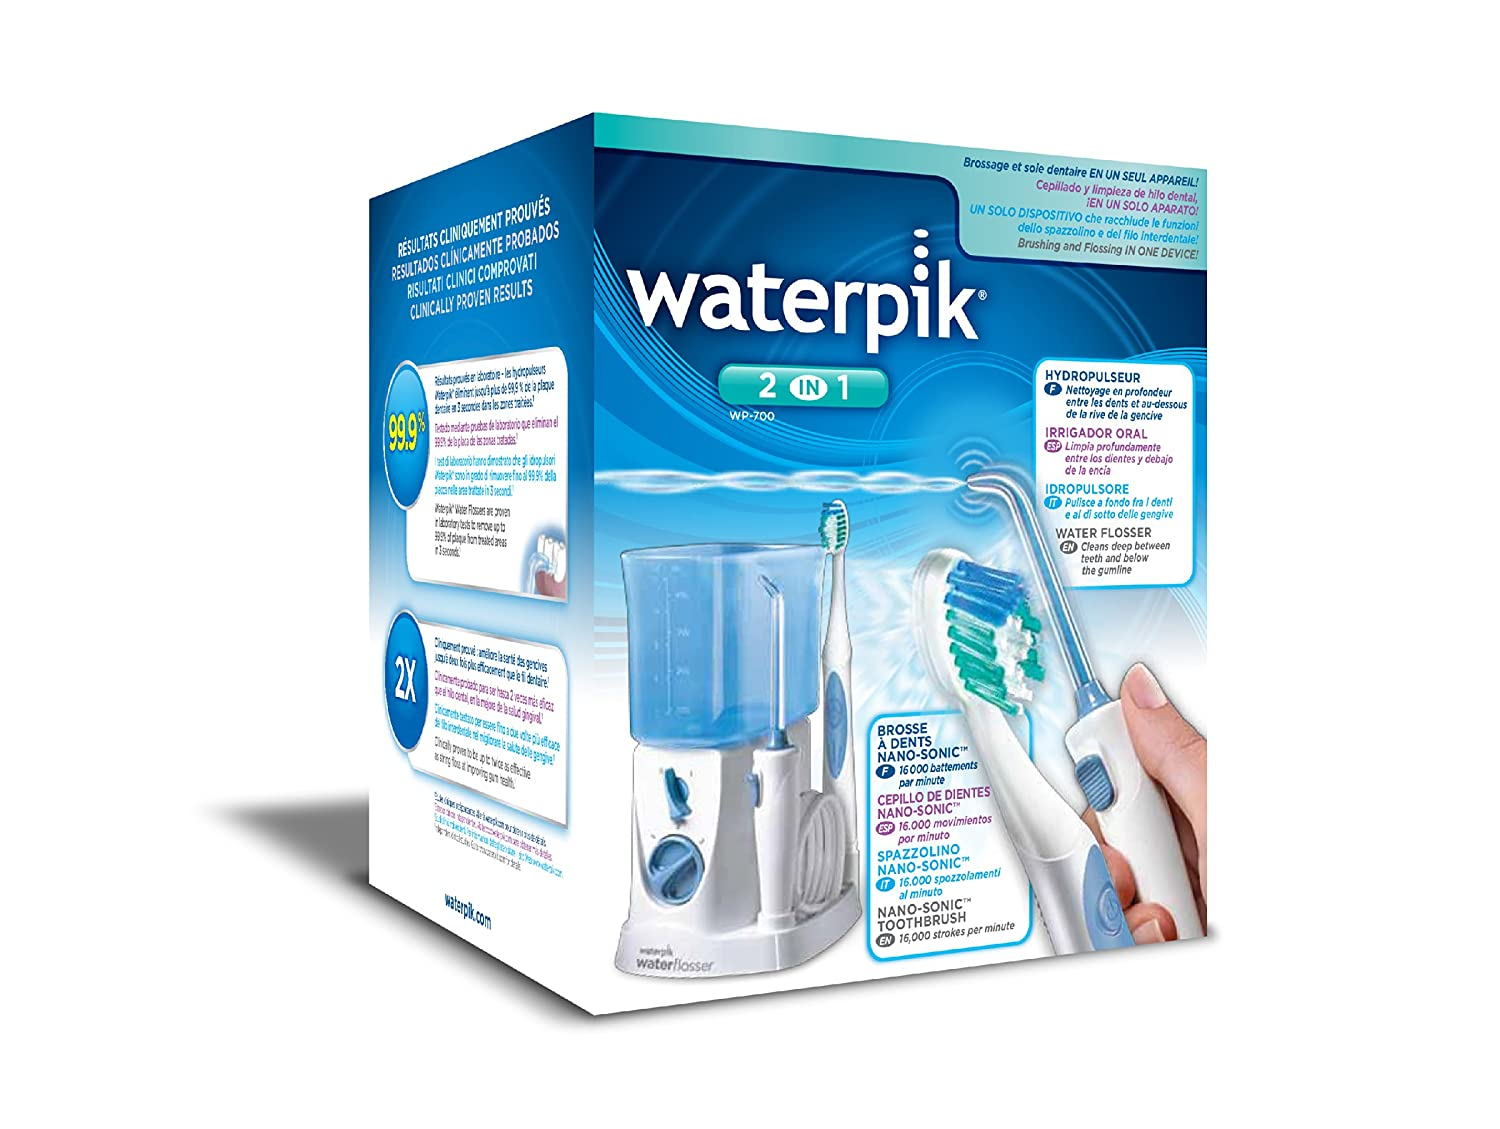 Amazon.com: Waterpik Waterflosser + Sonic Toothbrush: Health & Personal Care